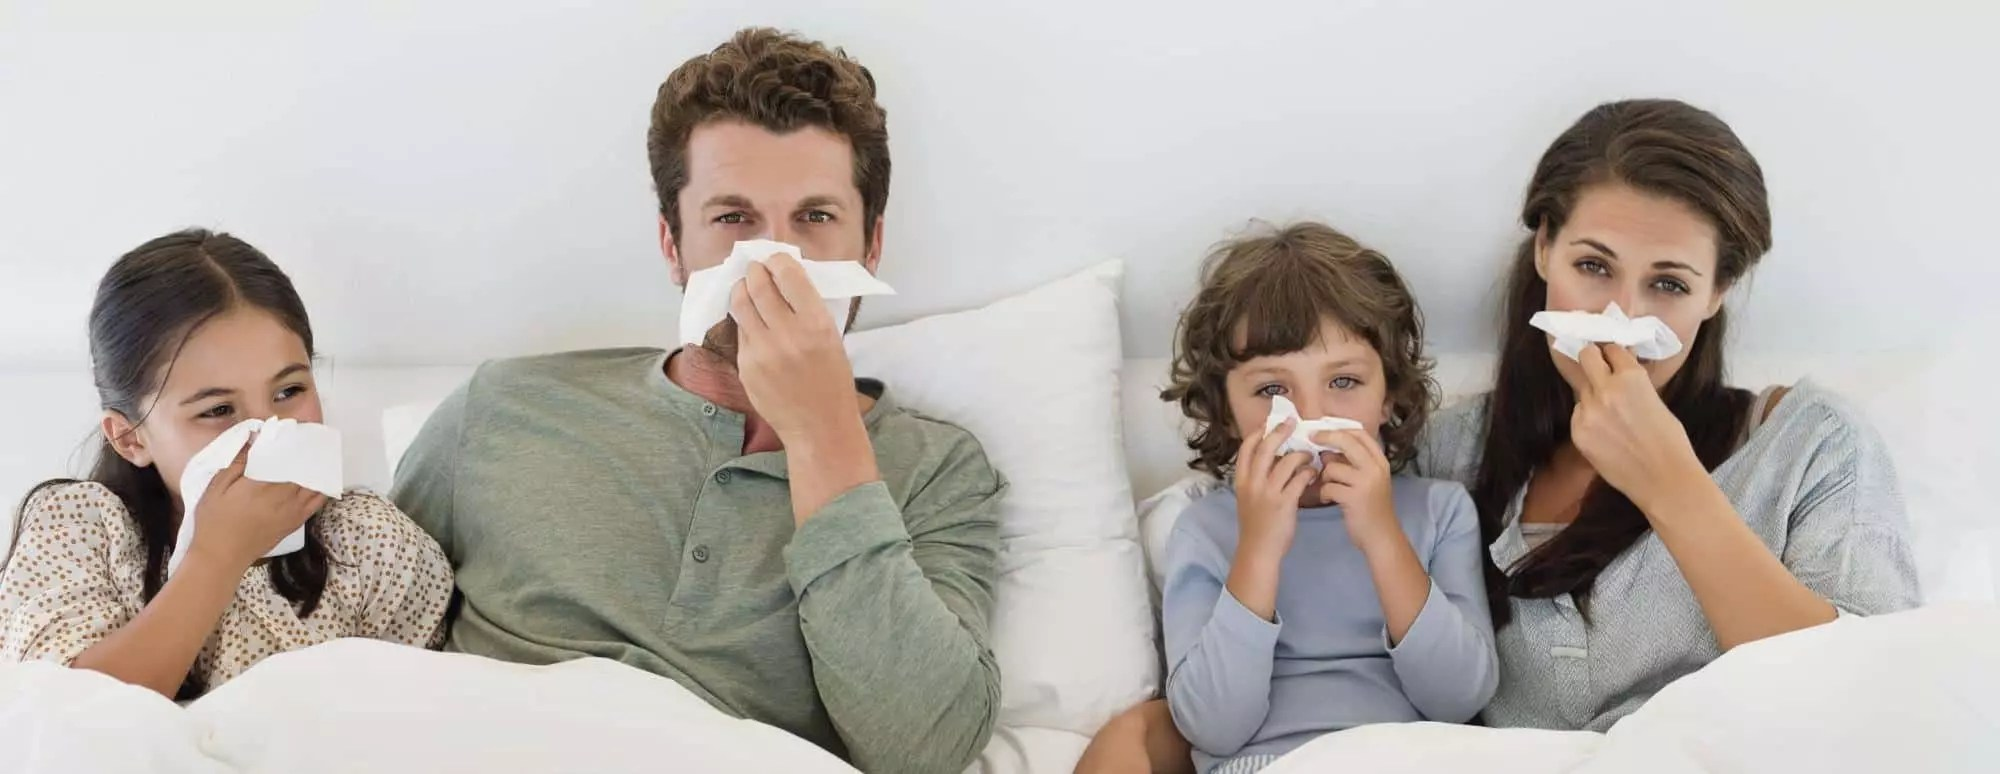 4 people in bed allergy from carpets